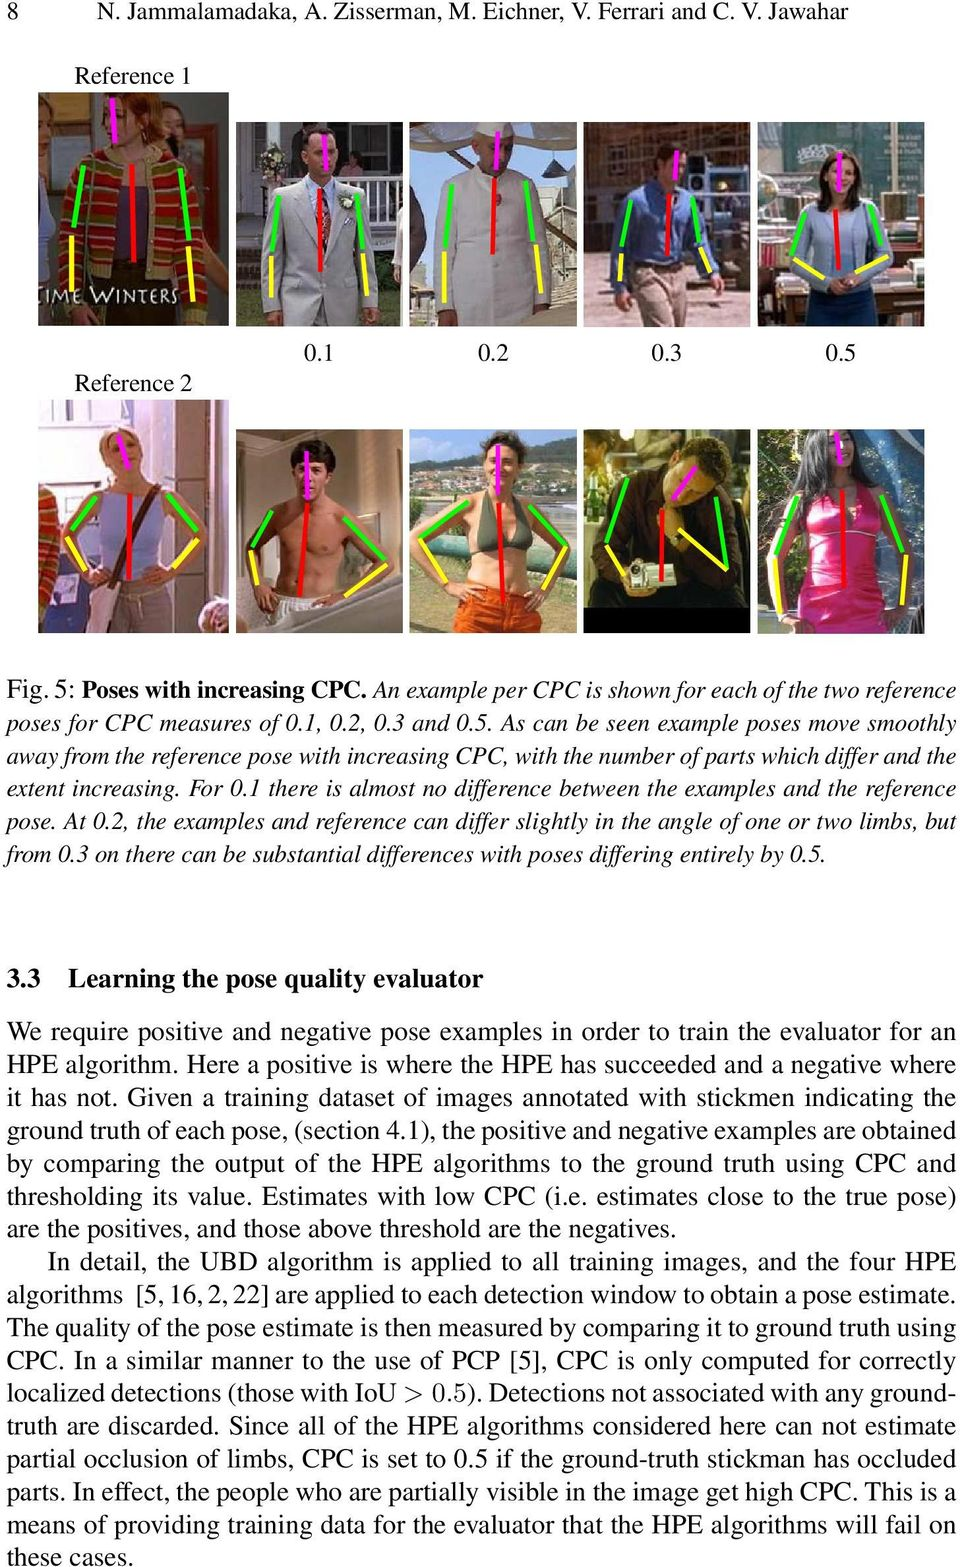 As can be seen example poses move smoothly away from the reference pose with increasing CPC, with the number of parts which differ and the extent increasing. For 0.